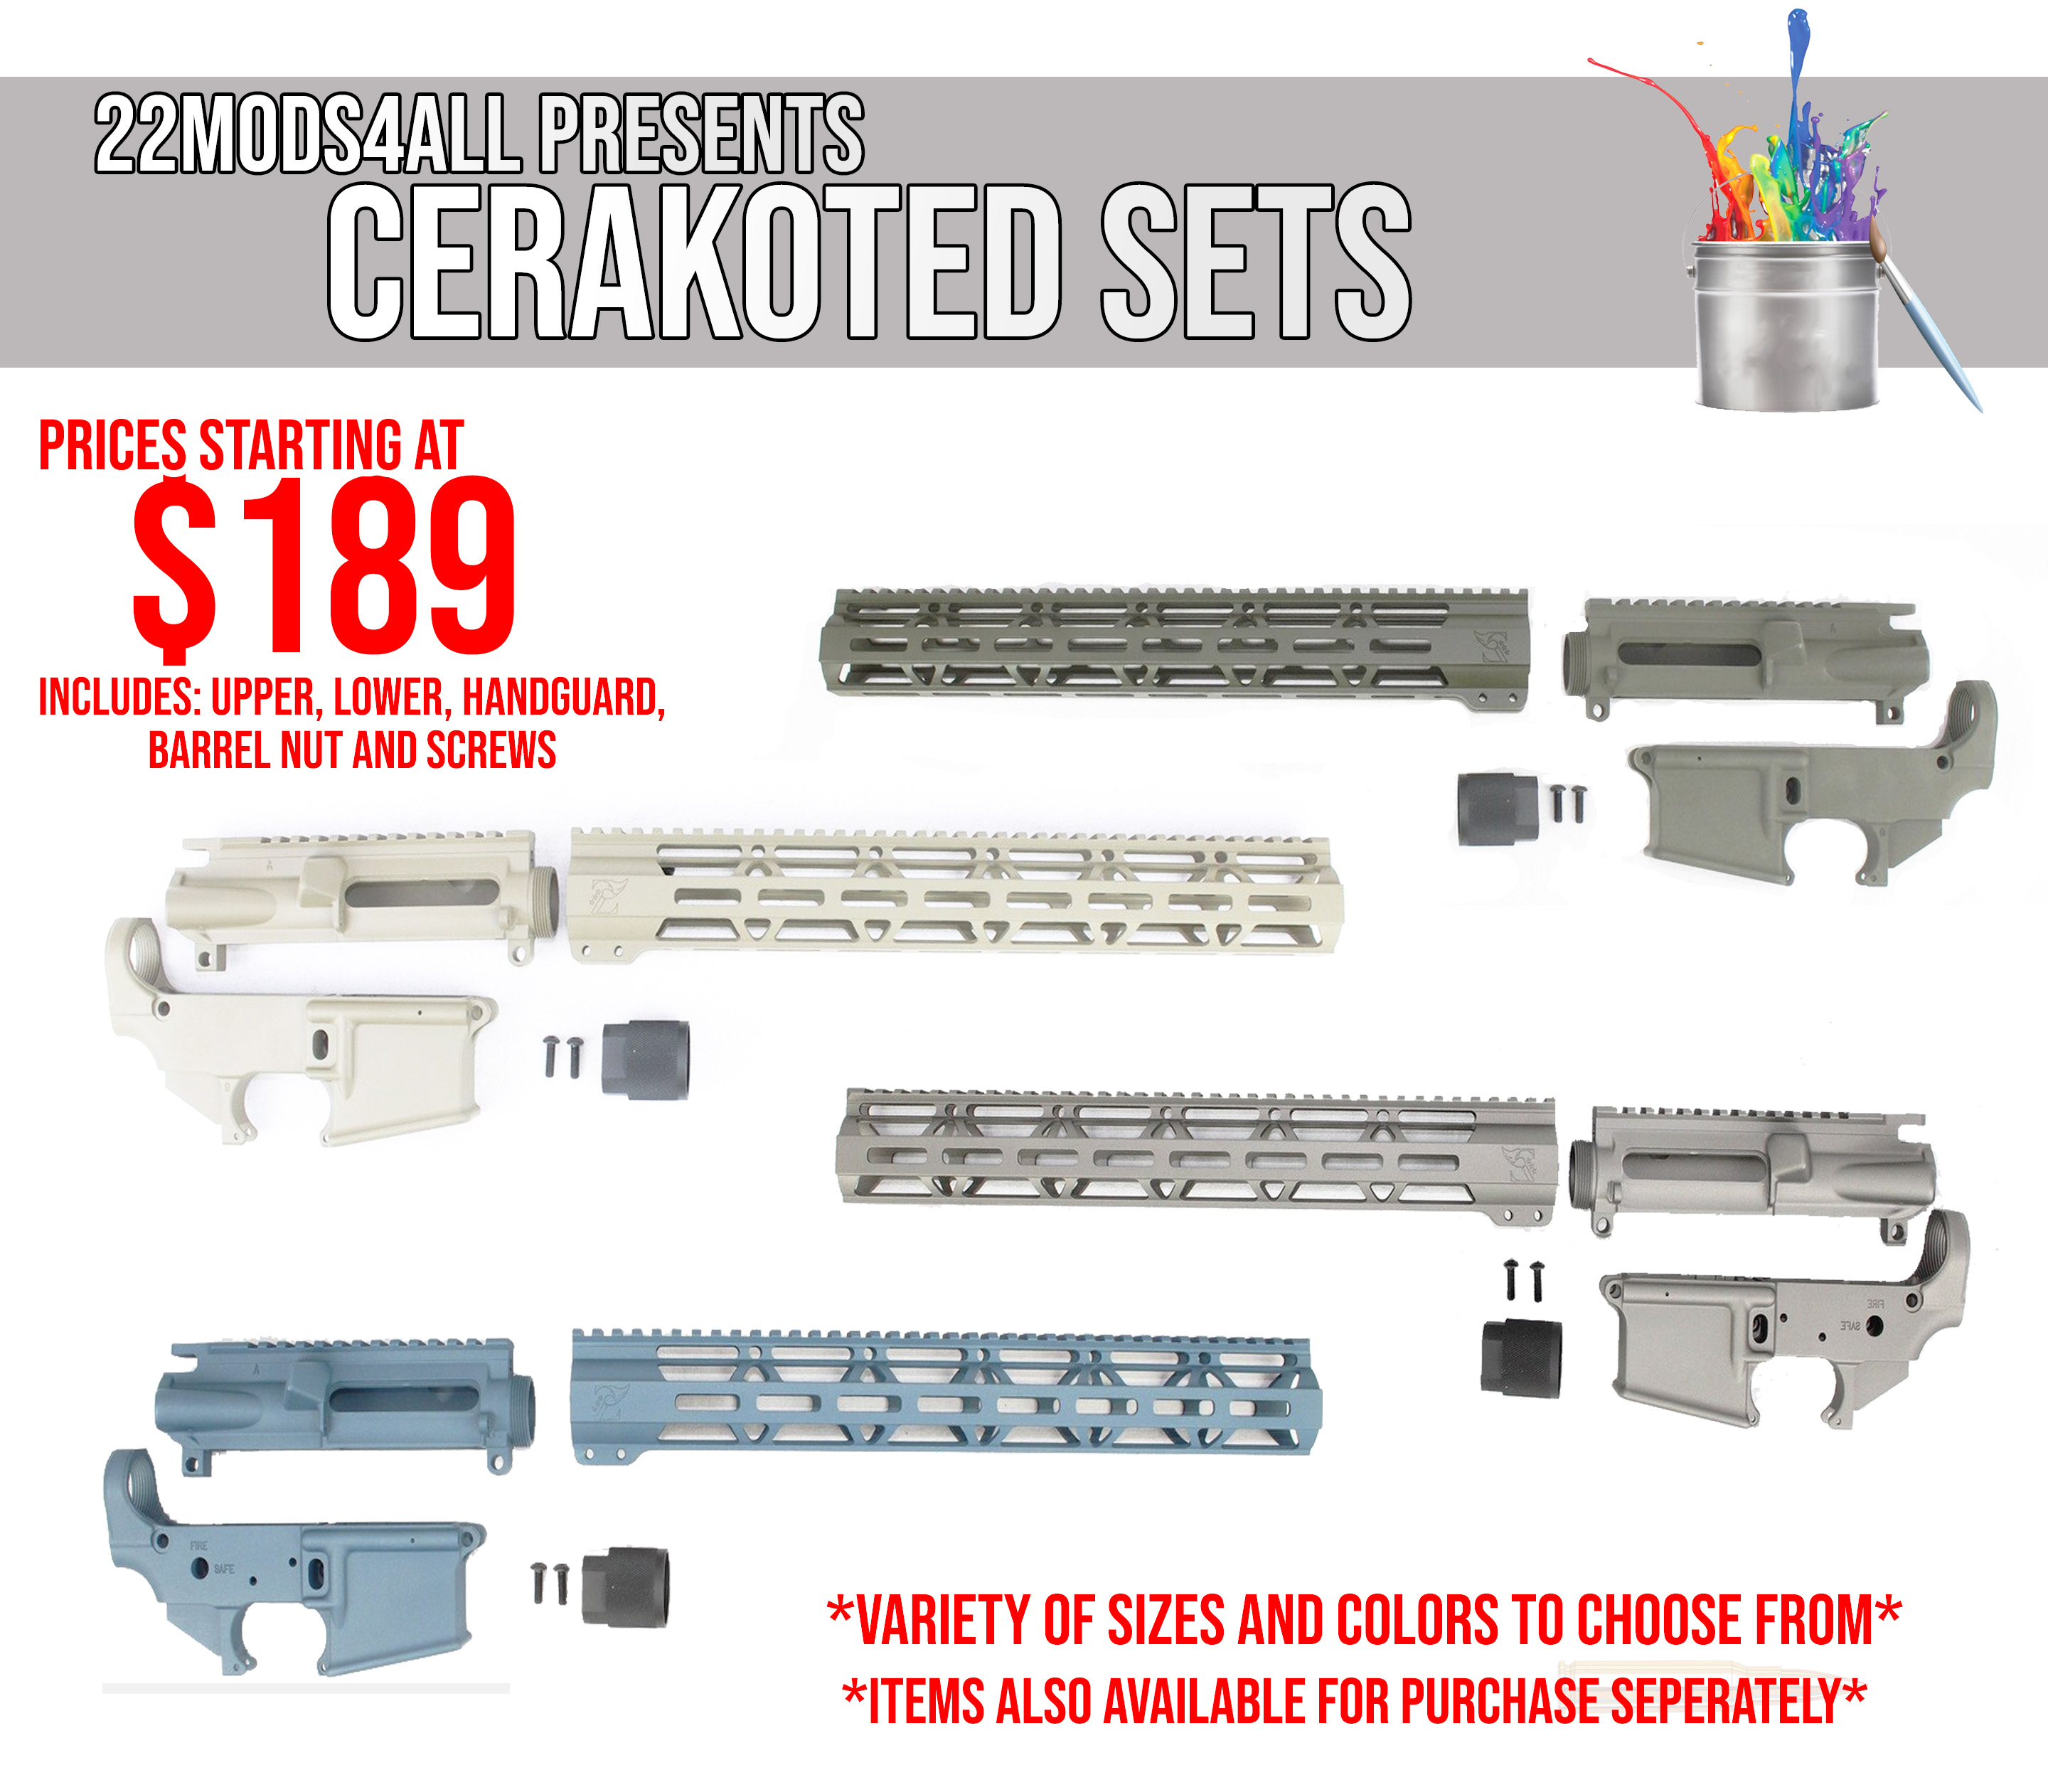 22mods4all Cerakote Sets! Looking for your favorite color for your next AR  frame? Check these sets out now! - $189